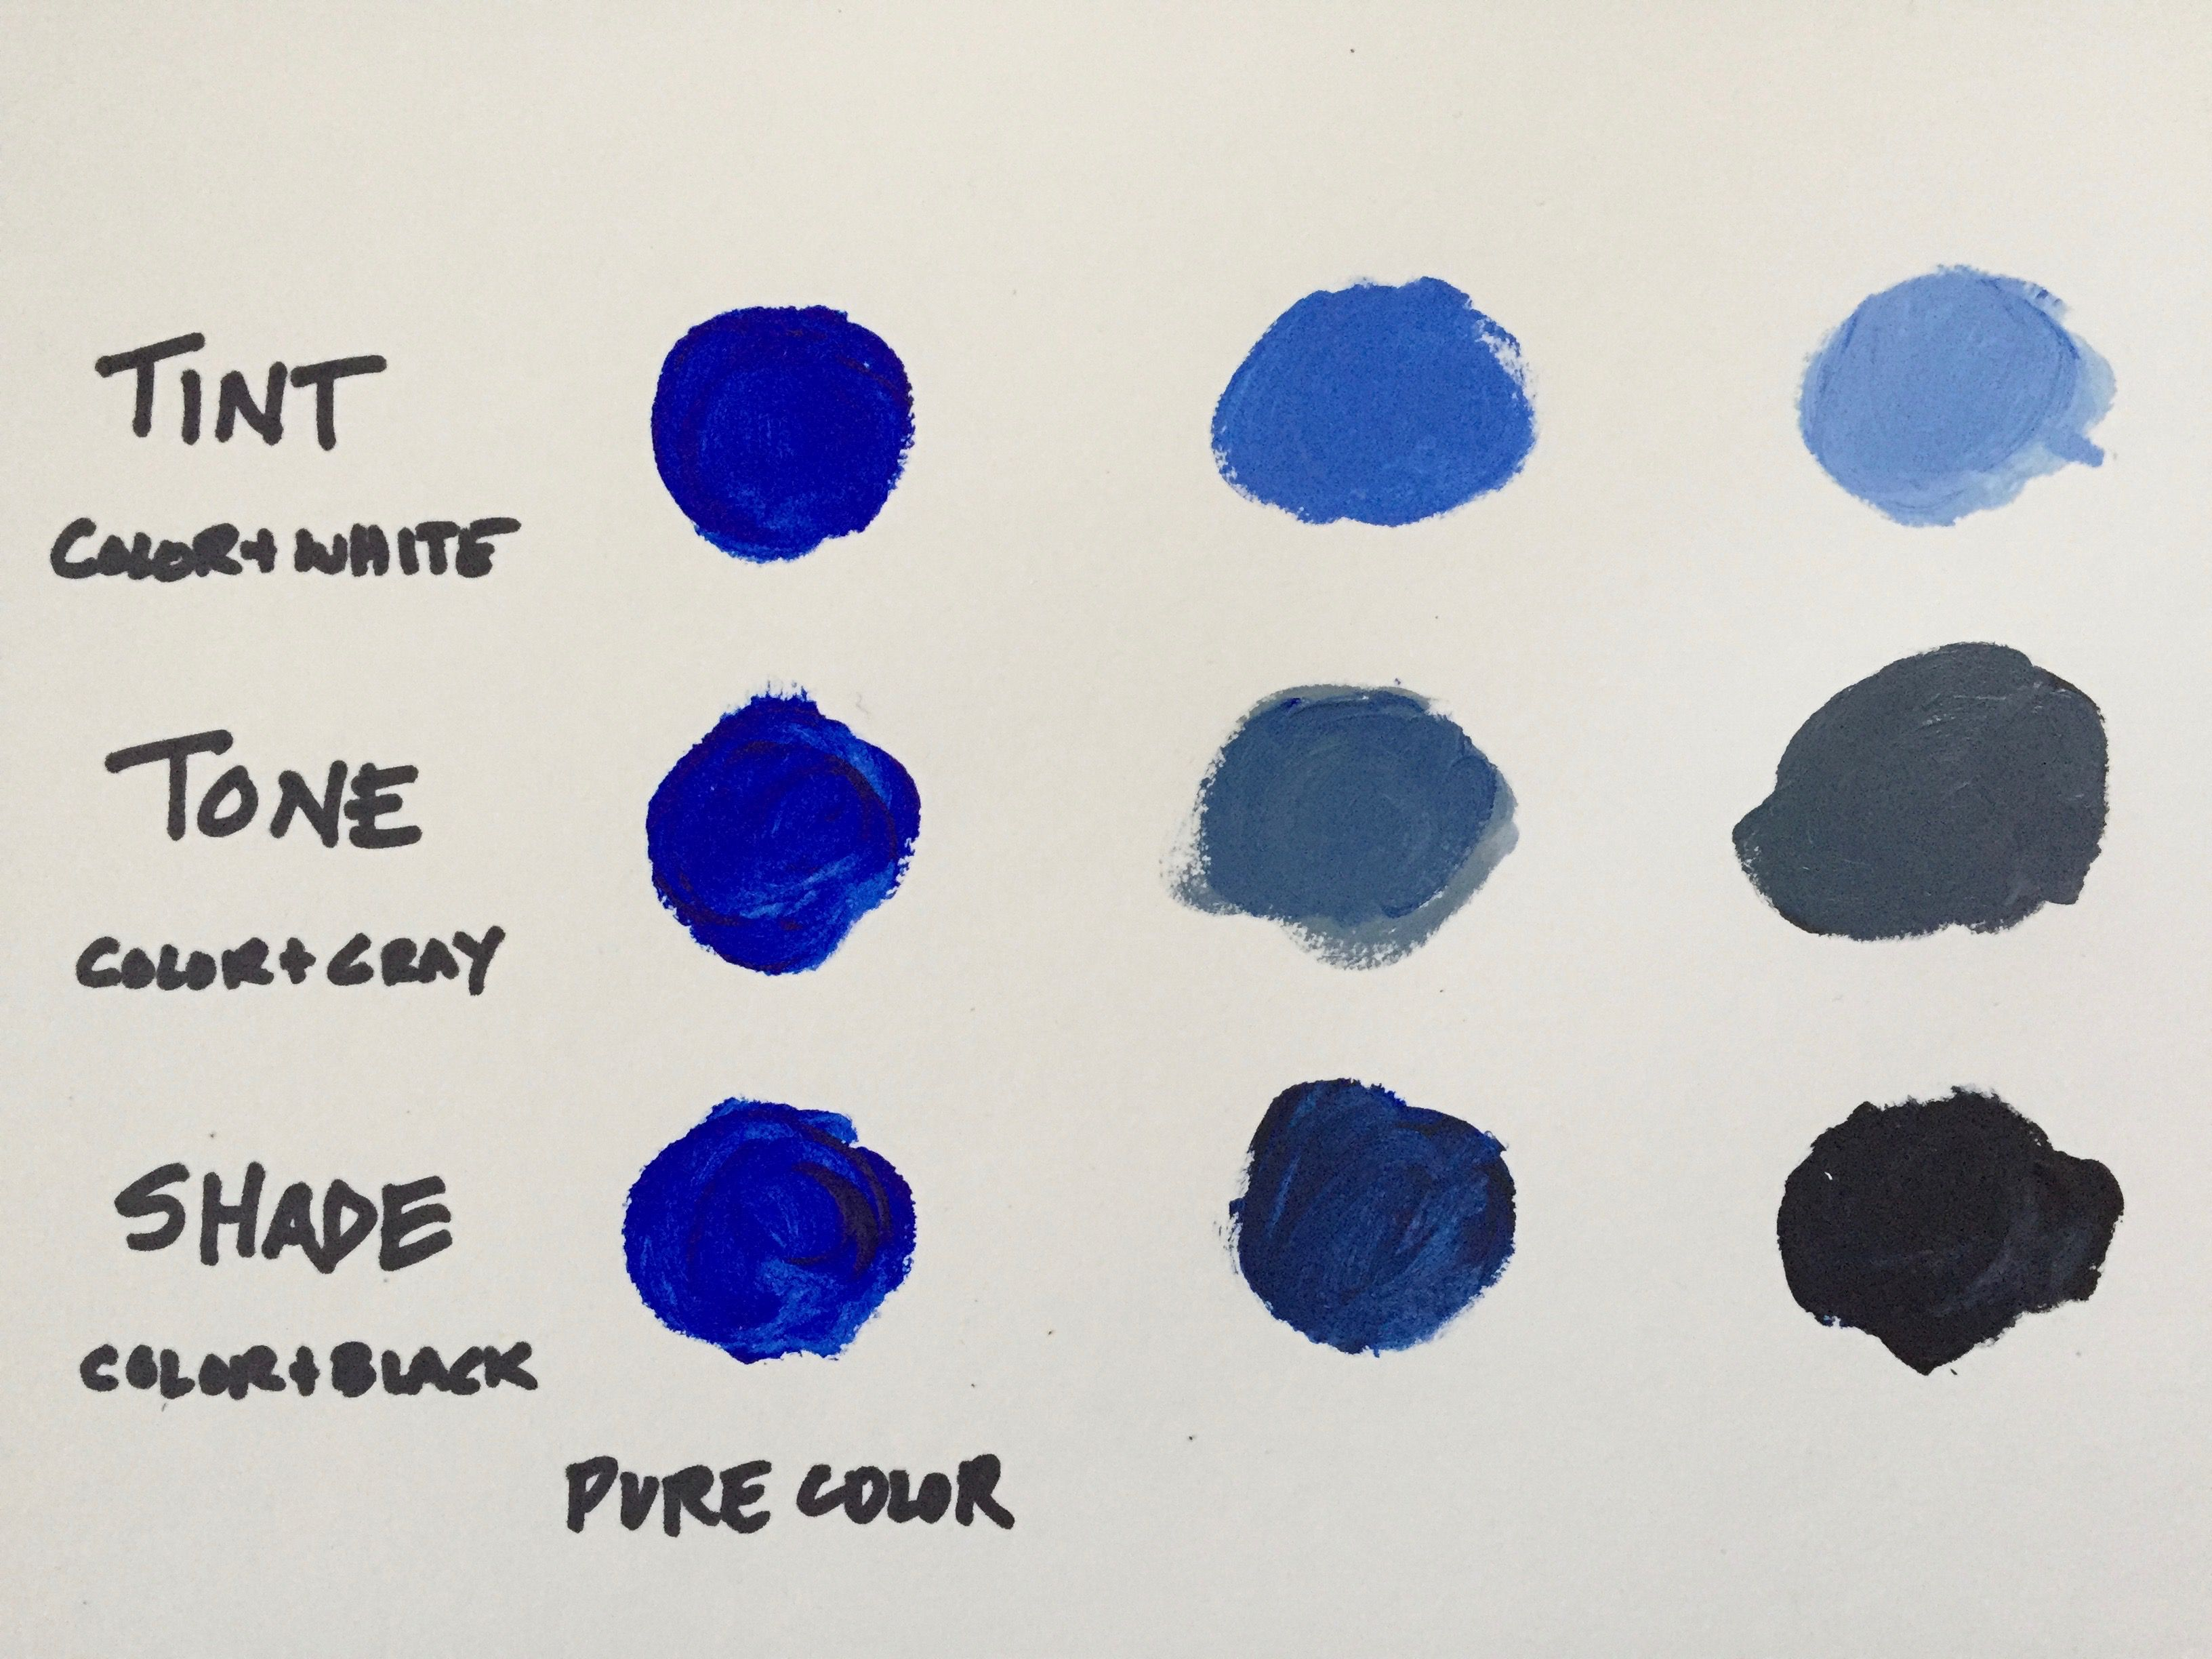 Diagram showing tint, tone, and shade with ultramarine blue acrylic paint